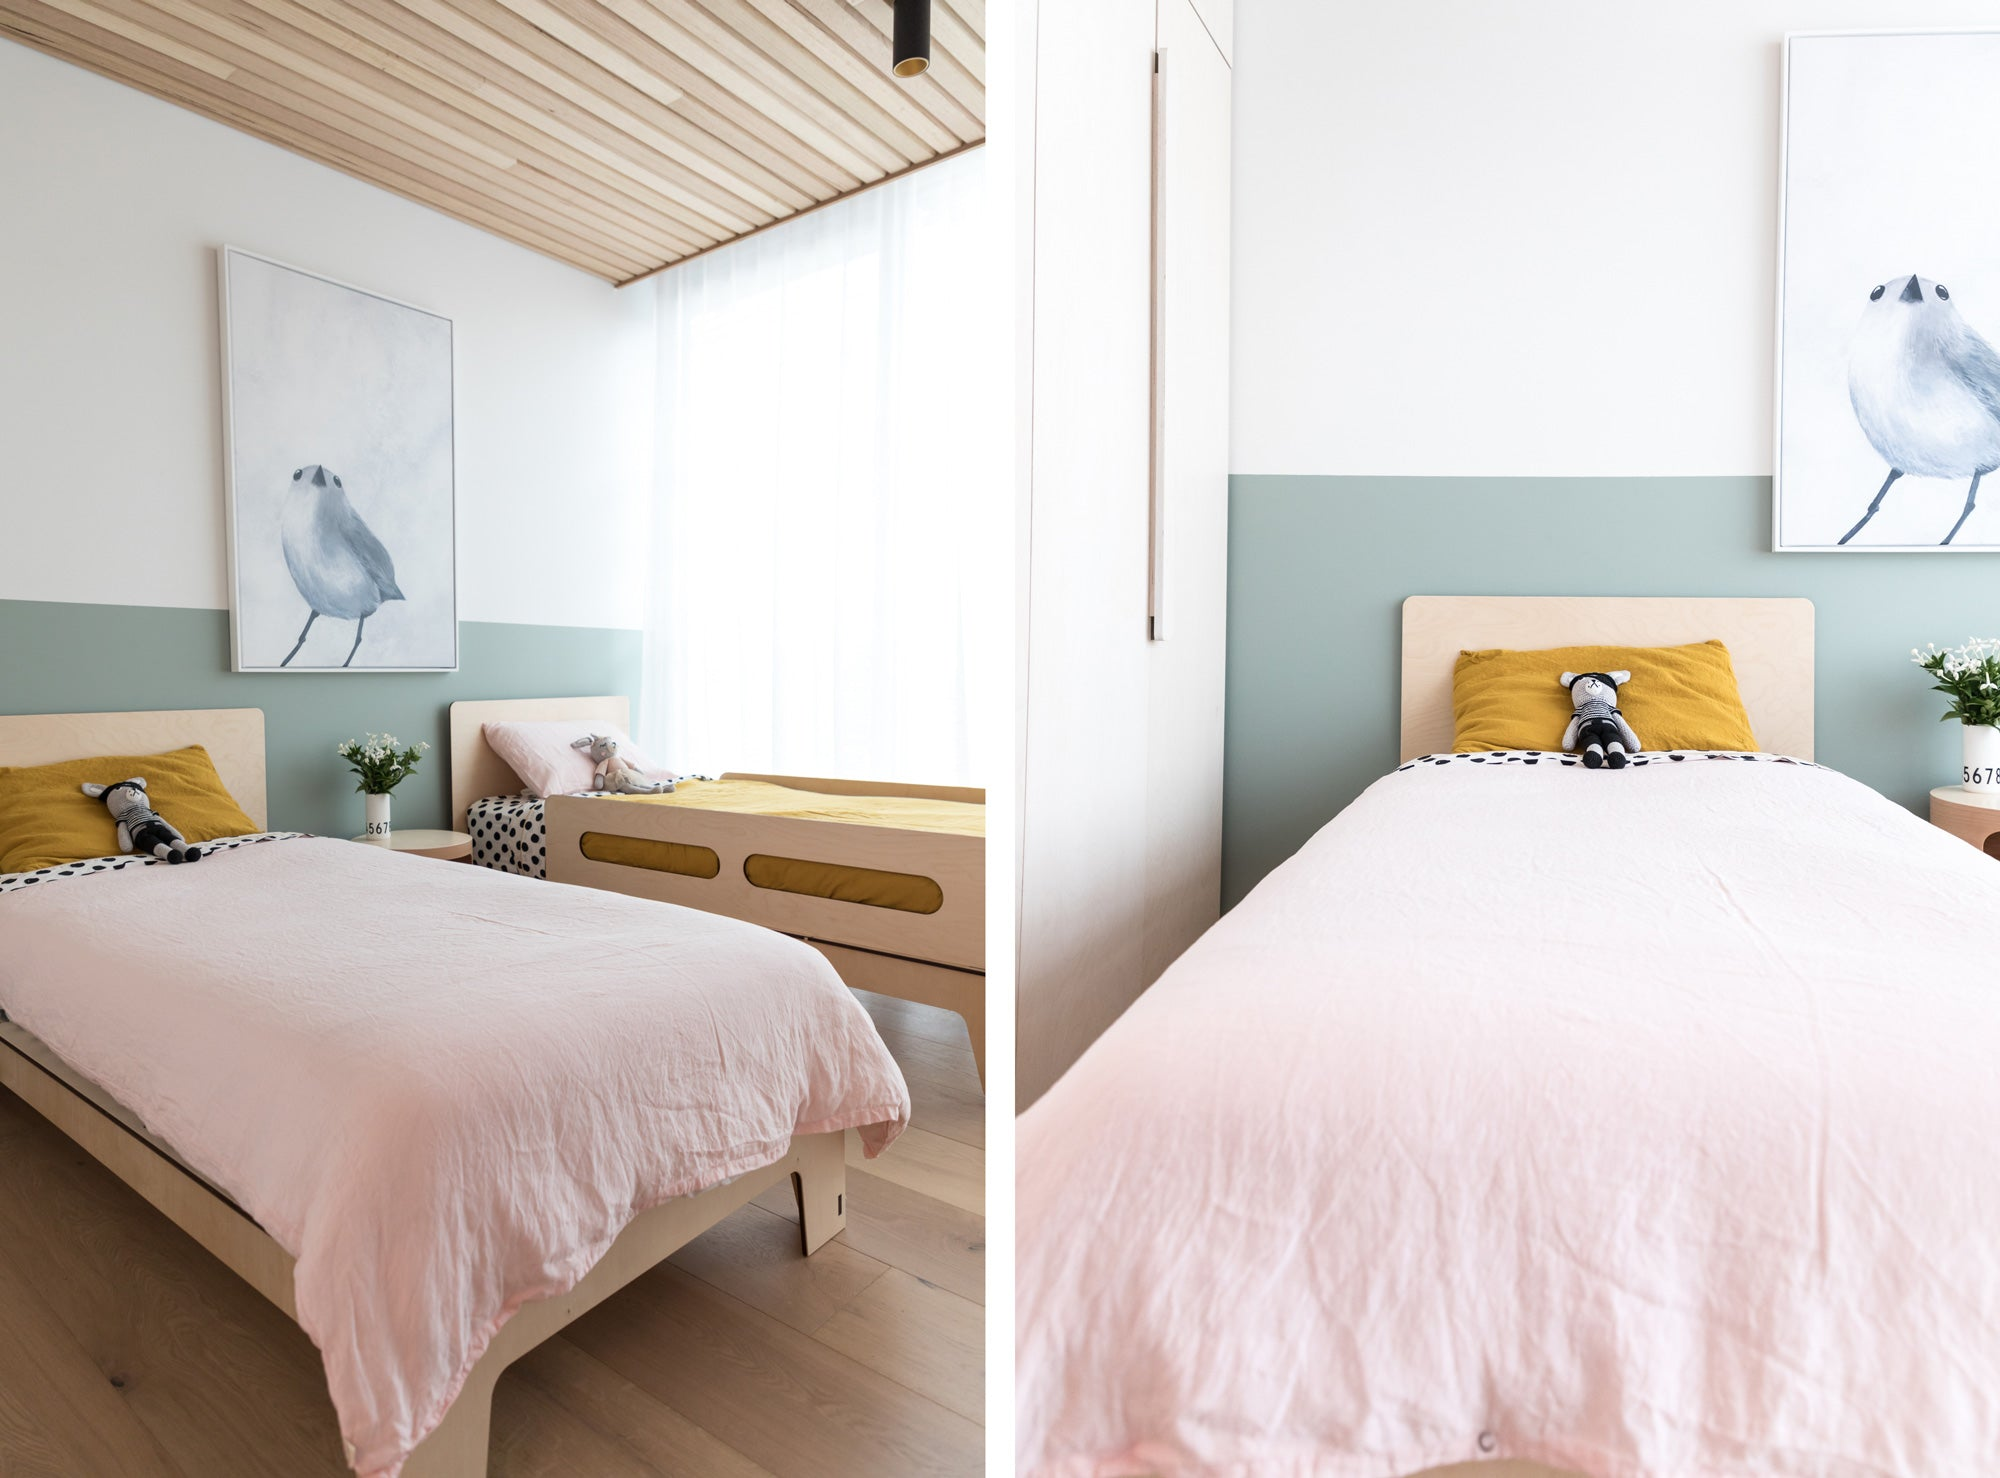 Image of The Singolo Single Bed and Sleigh Bed by Plyroom styled by Hide and Sleep